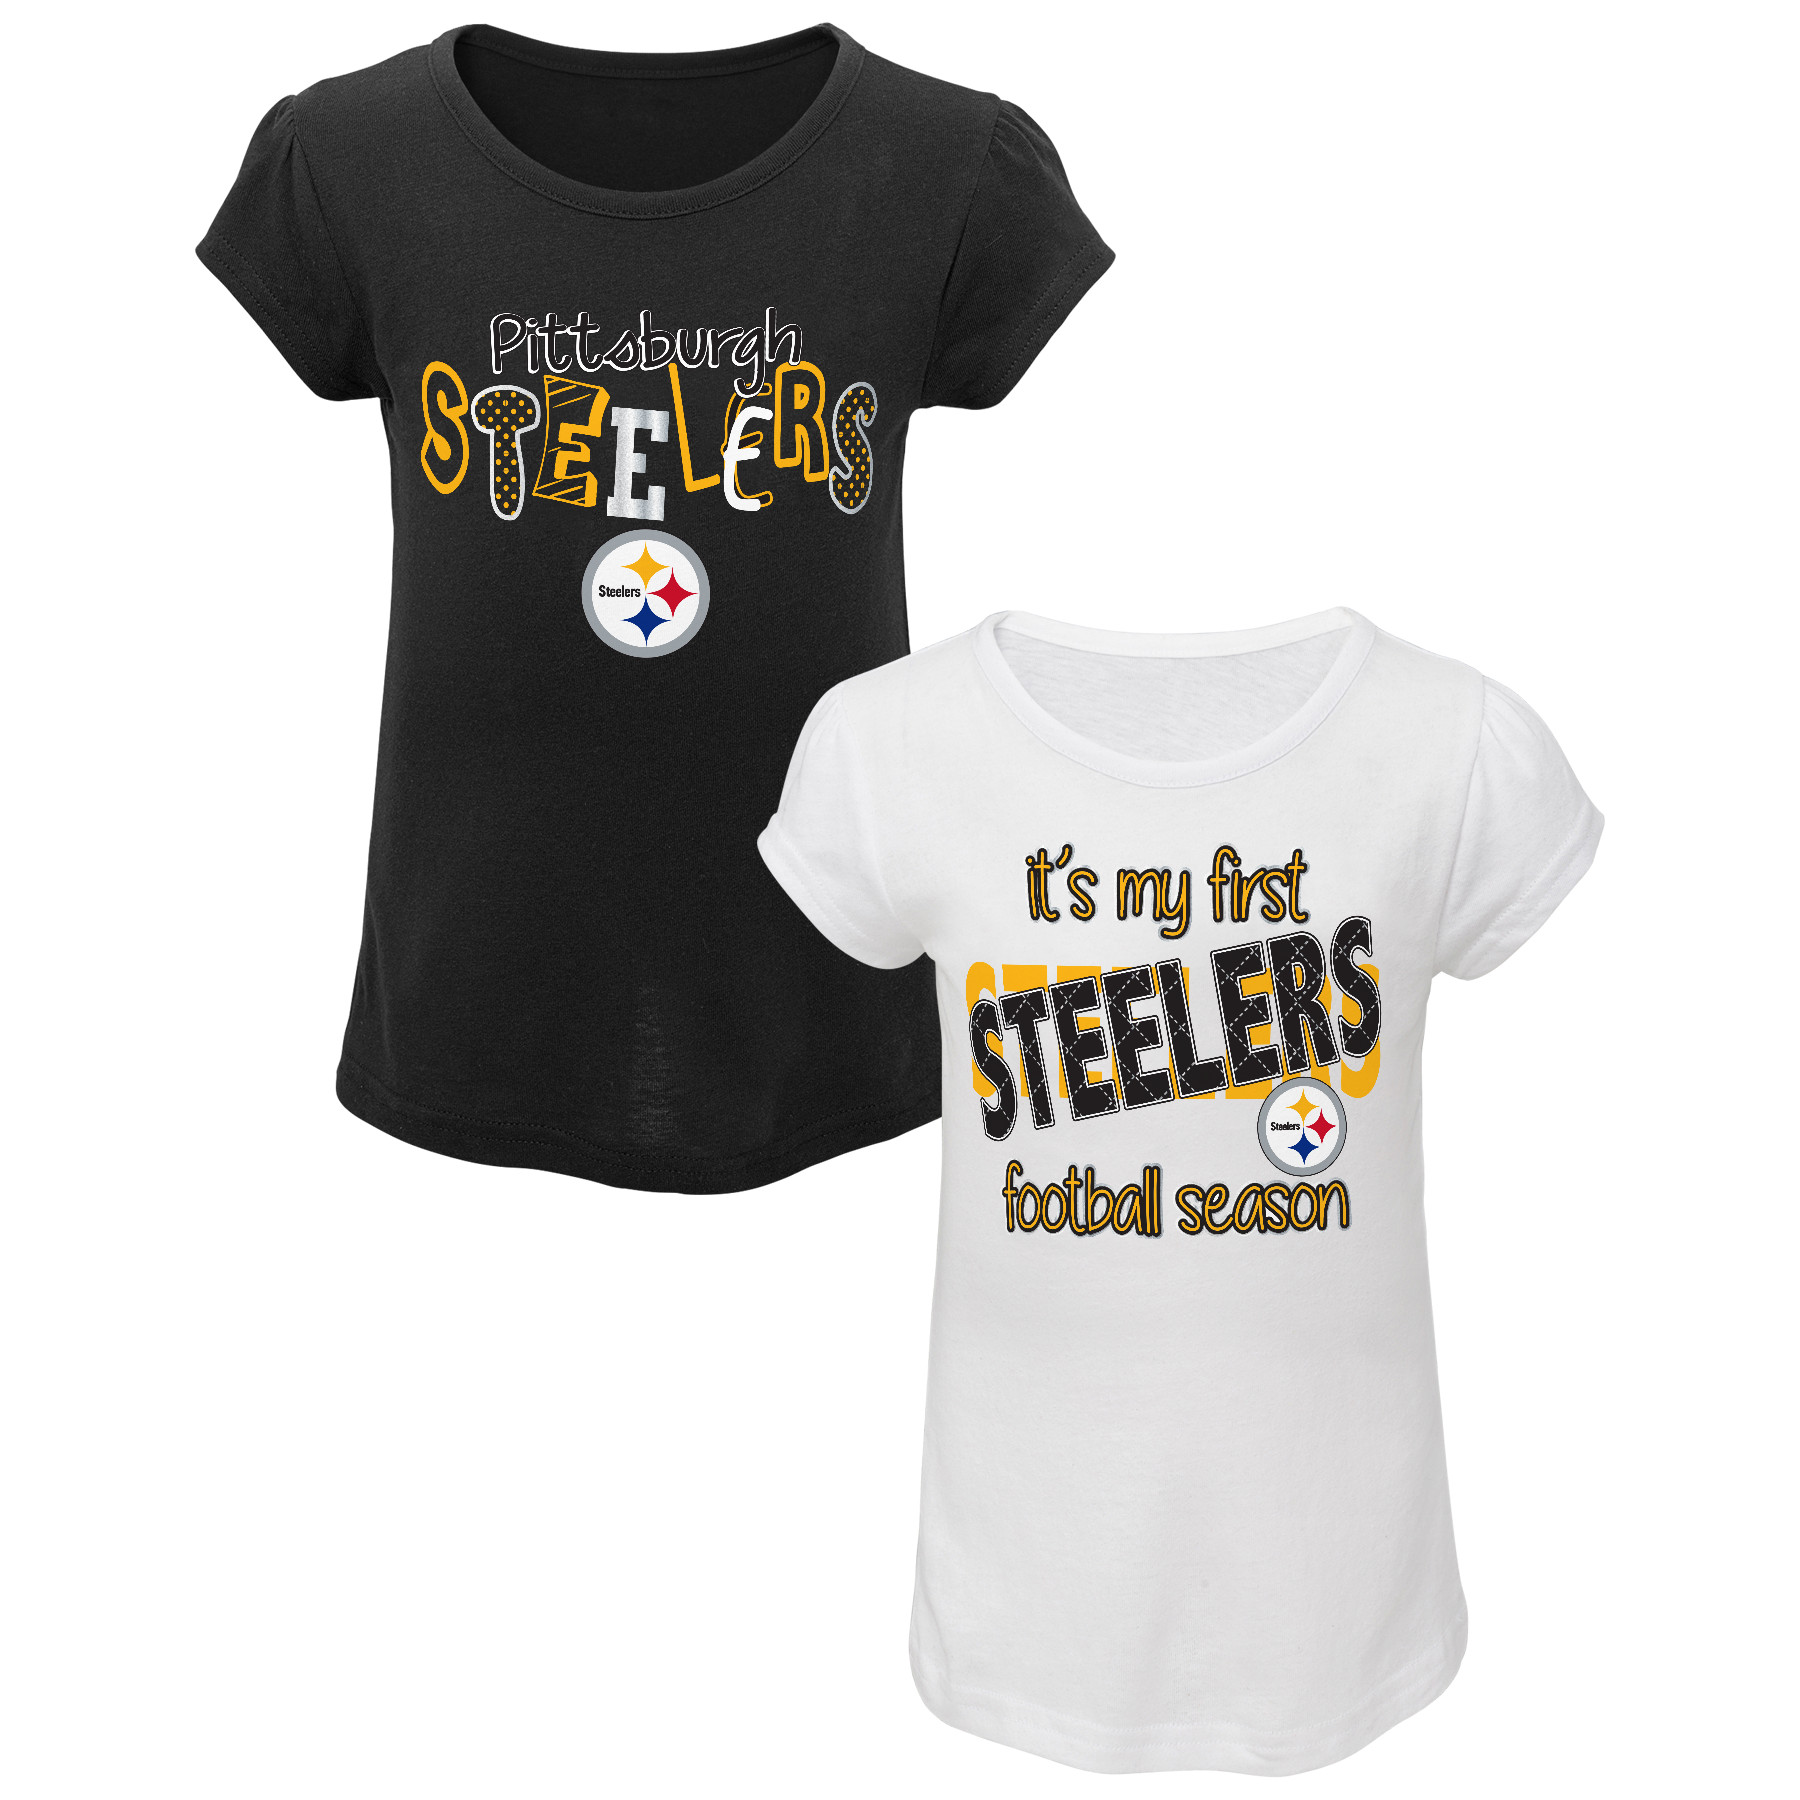 NFL Toddler Girls' 2-Pack Graphic T-shirts - Pittsburgh Steelers PartNumber: 046VA99079512P MfgPartNumber: 14AUZ-05